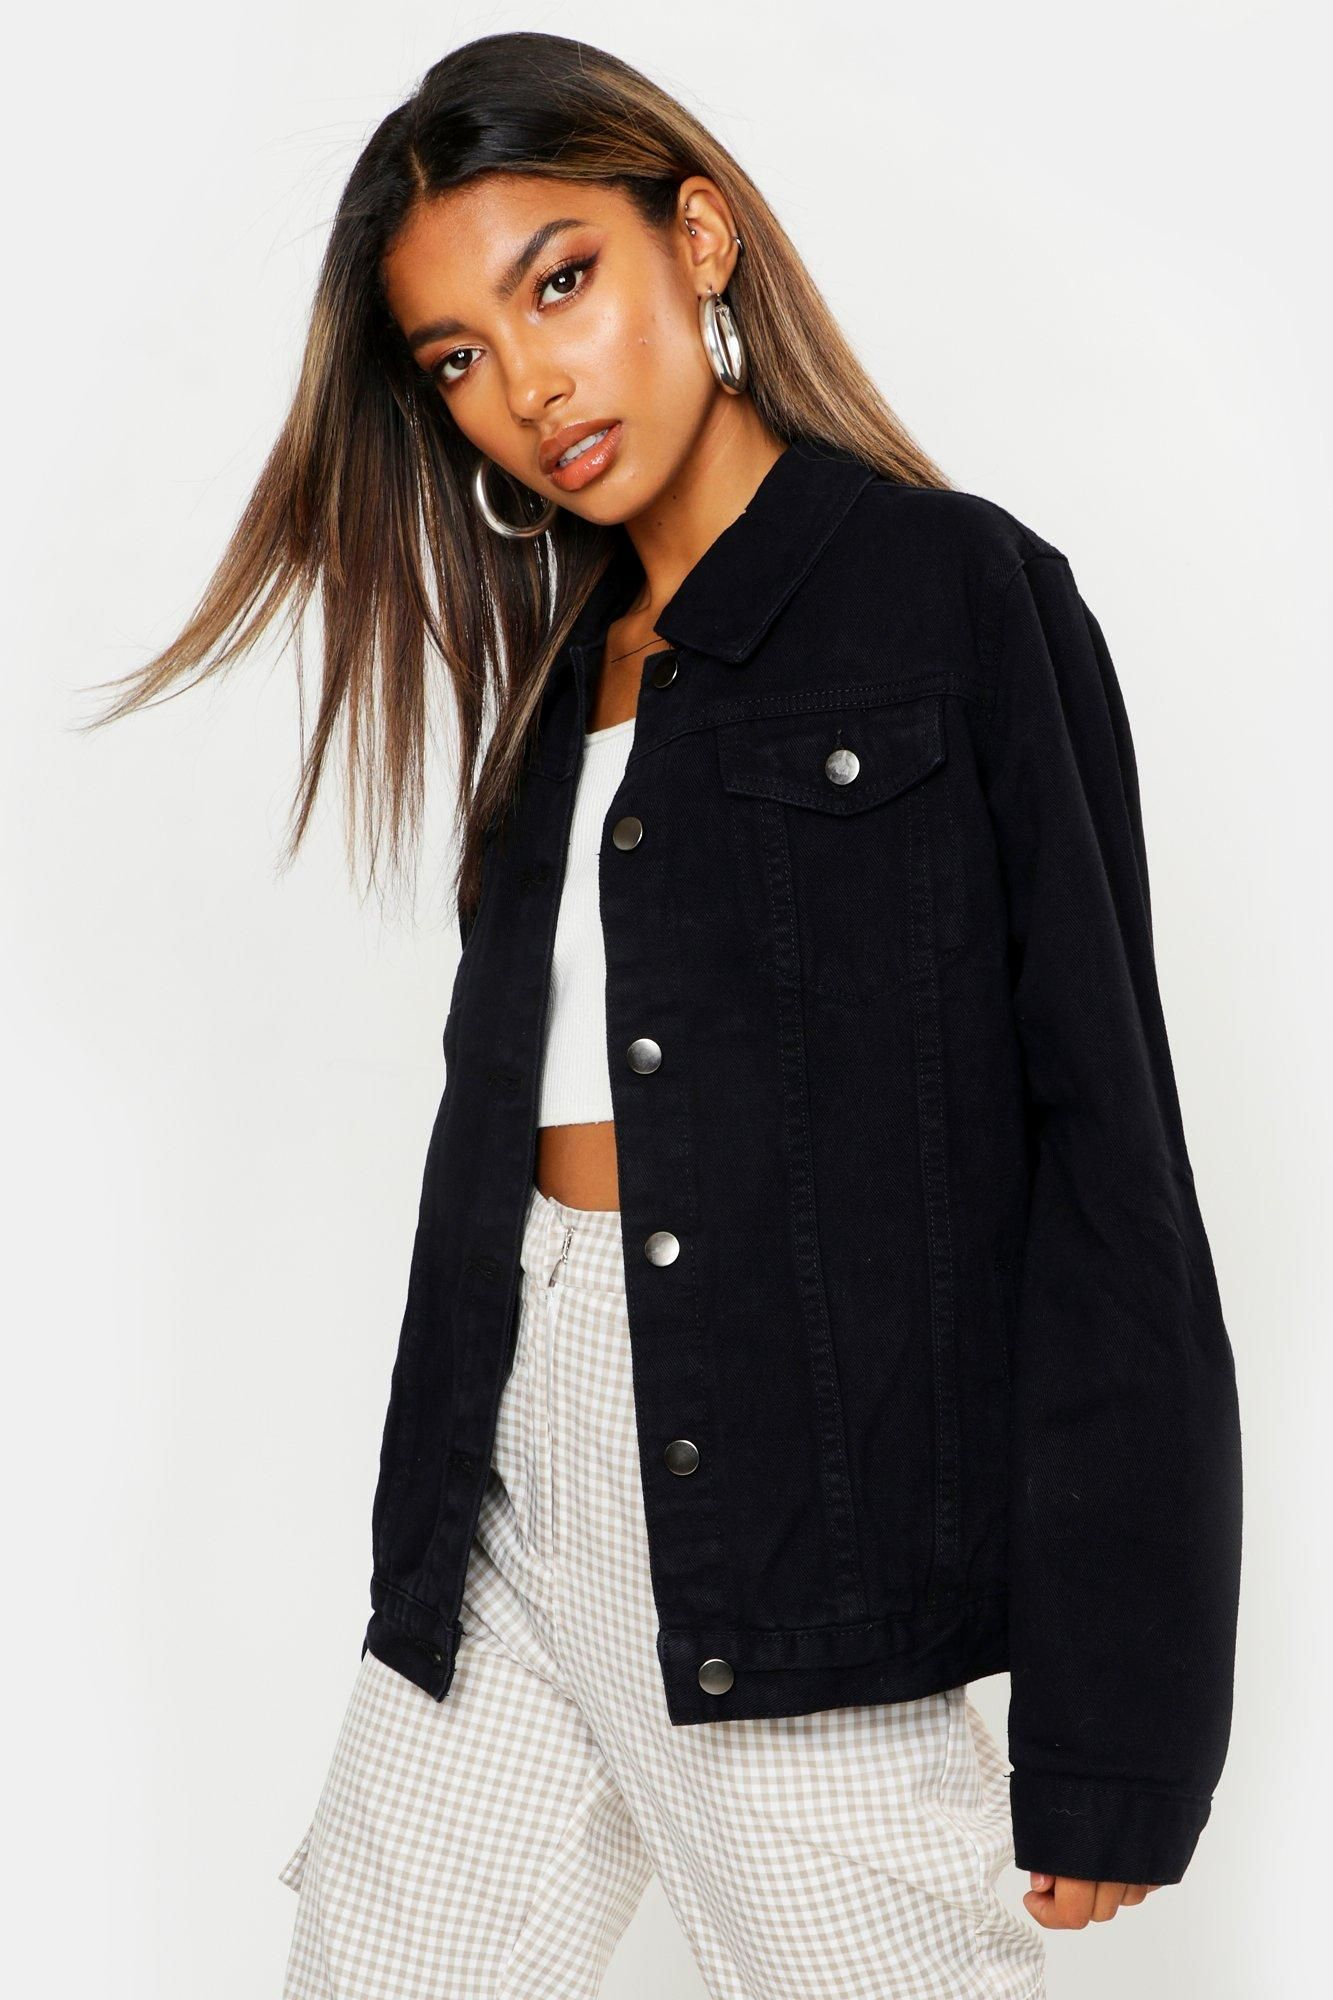 Pin By Chantal On Fashion In 2021 Oversized Black Denim Jacket Black Denim Jacket Black Denim Jacket Outfit [ 2000 x 1333 Pixel ]